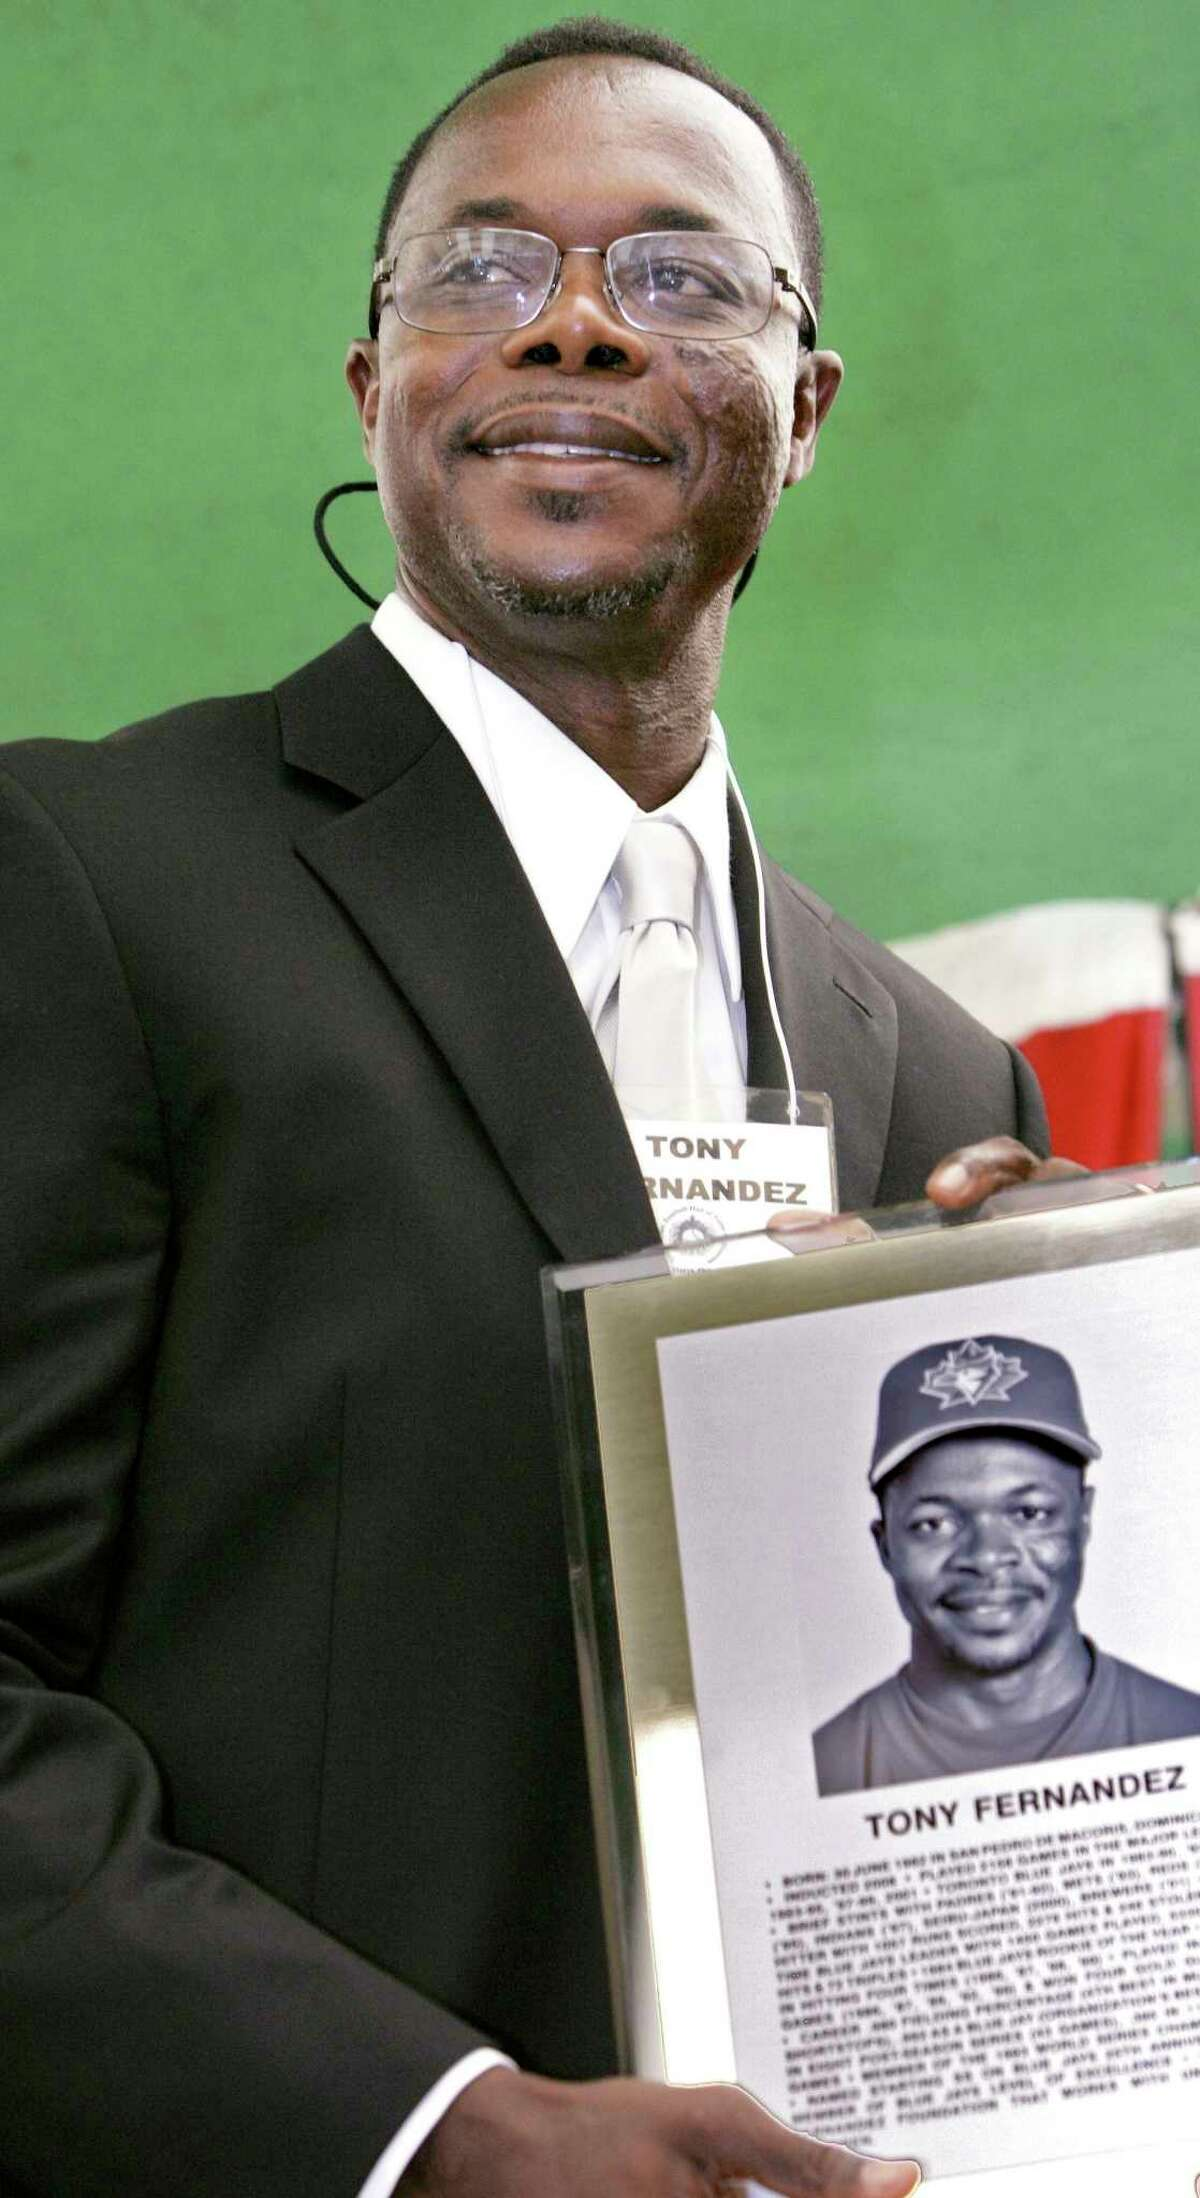 FILE - In this June 28, 2008, file photo, former Toronto Blue Jays player Tony Fernandez attends the Canadian Baseball Hall of Fame & Museum ceremony in St. Marys, Ontario. Former All-Star shortstop Fernandez remained on a life support system Sunday, Feb. 16, 2020, pending a decision by his family on how to proceed, the director of his foundation said. He had been in a medically induced coma, said Imrad Hallim, the director and co-founder of the Tony FernA!ndez Foundation. Fernandez was ill with a kidney disease for years and waiting for a transplant. (Ken Wightman, London Free Press/Canadian Press via AP, File)